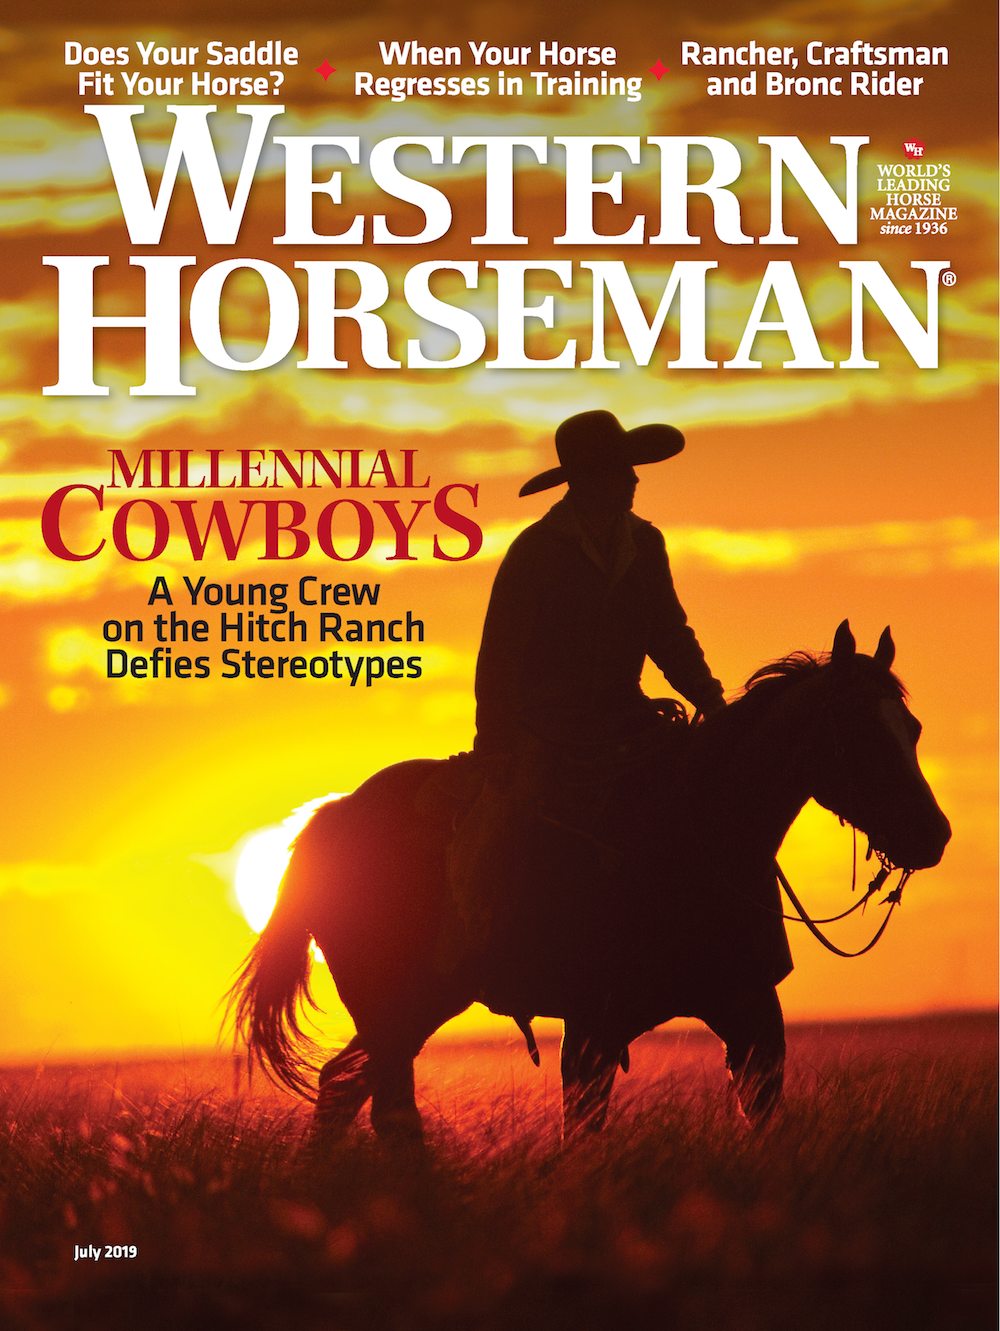 Western Horseman magazine July 2019 issue cover